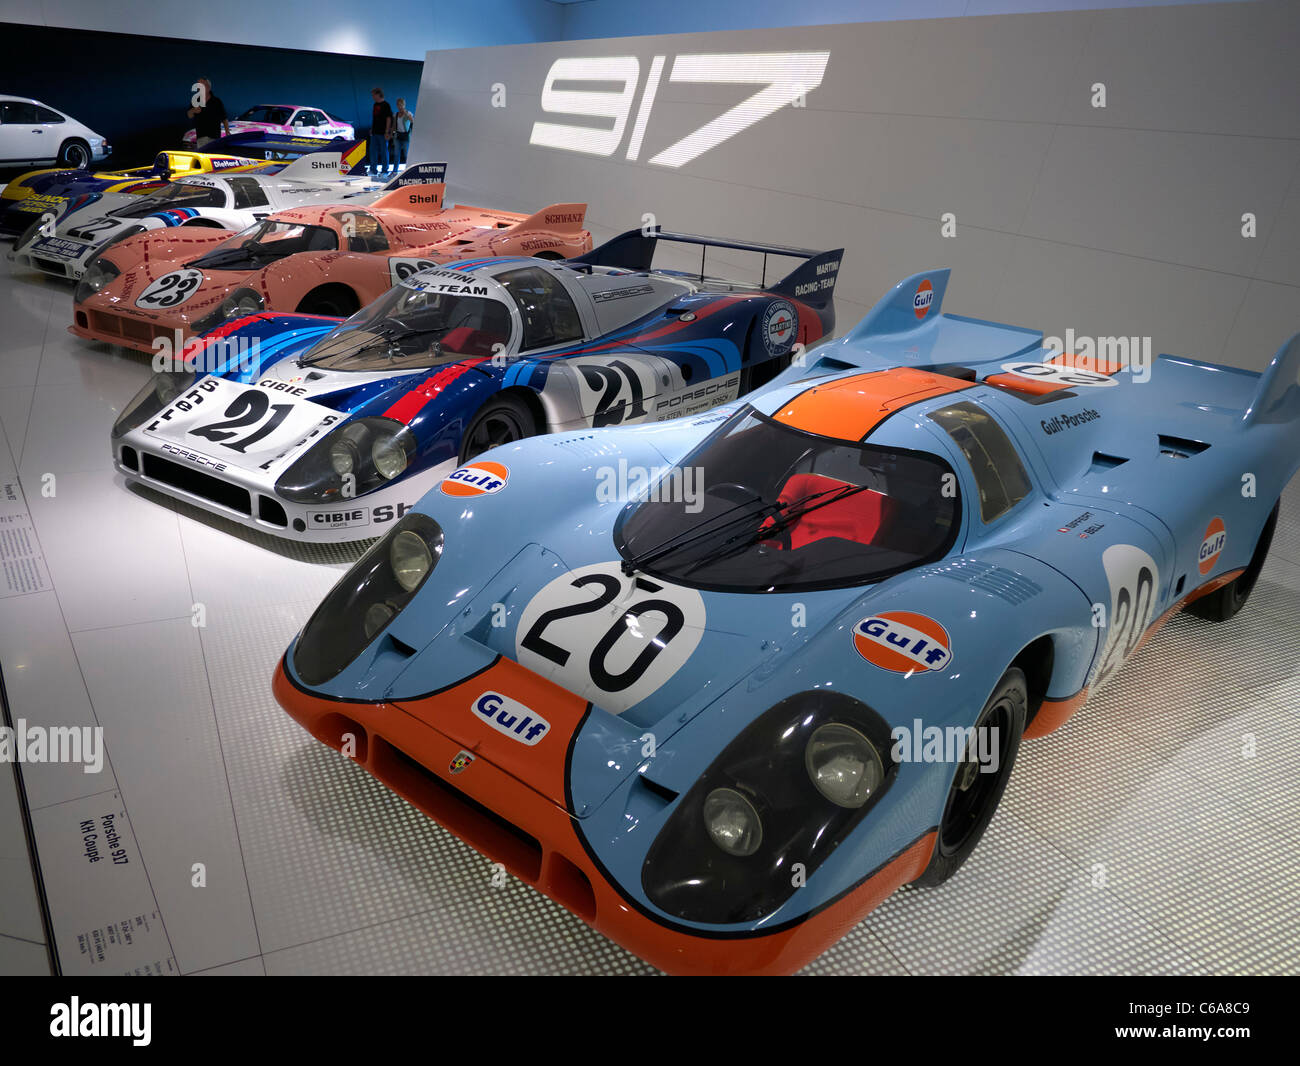 Museo Porsche.Collection Of Porsche 917 Race Cars On Display At Porsche Museum In